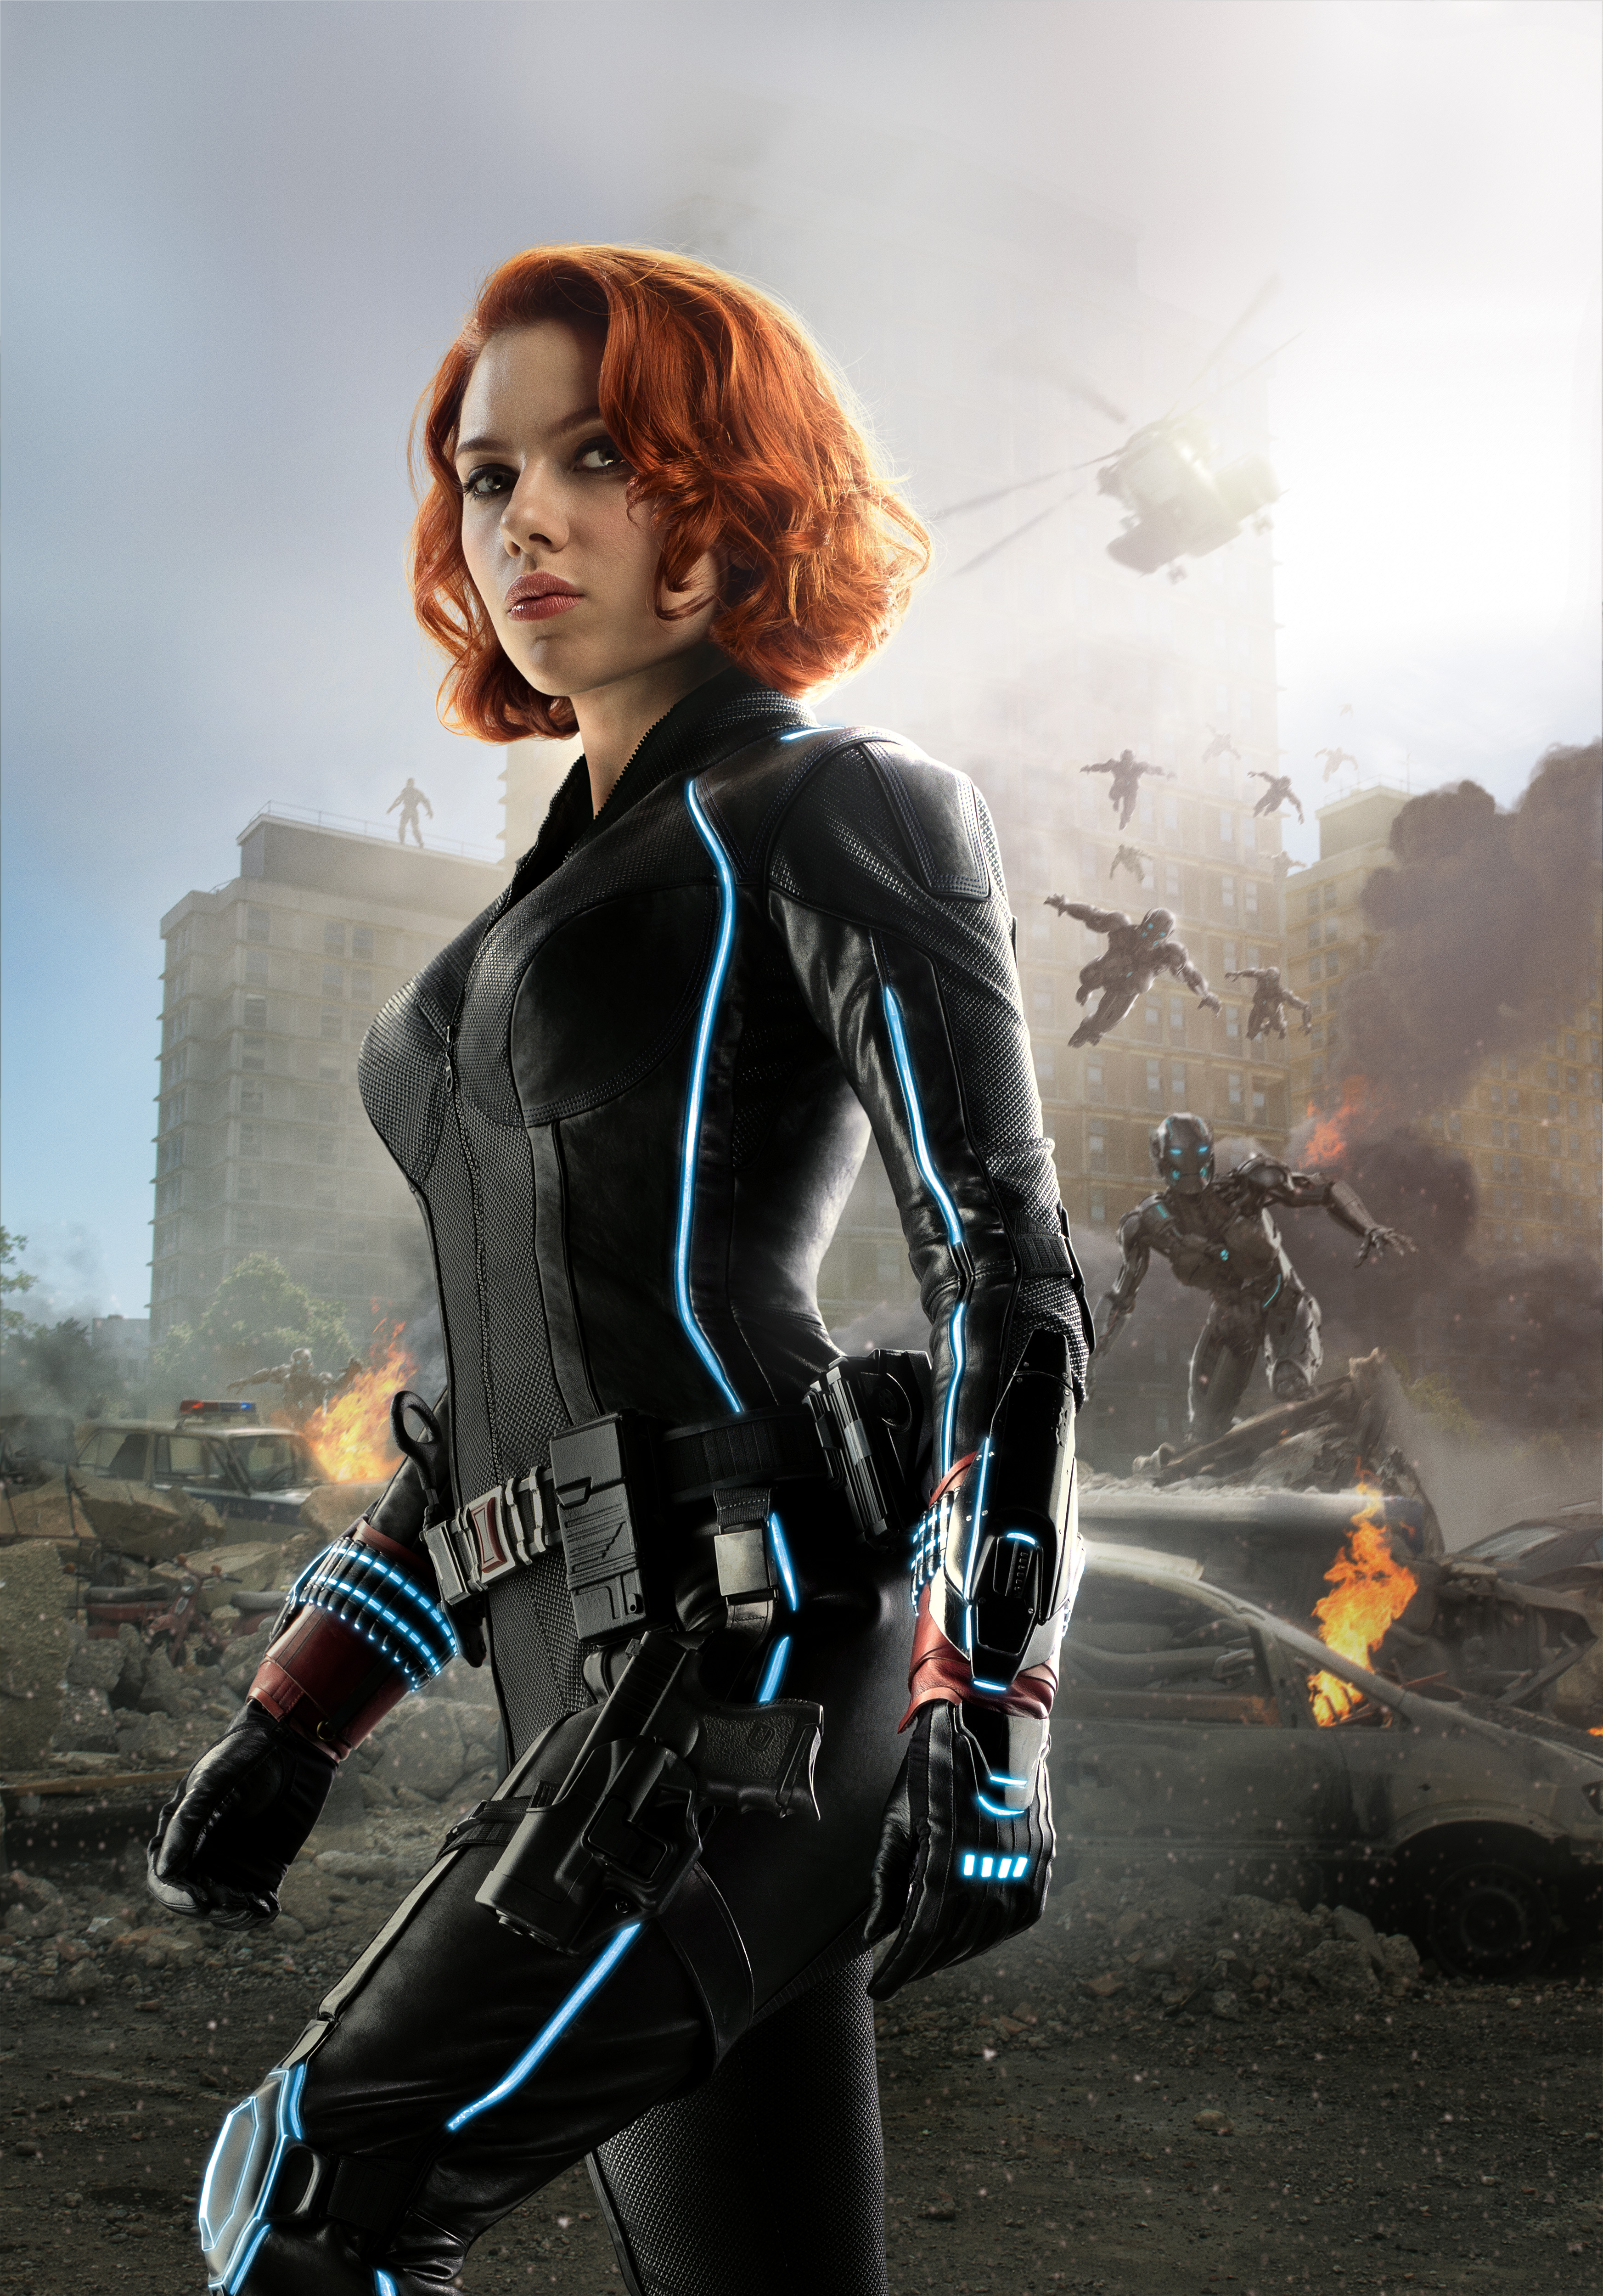 Avengers Age of Ultron Black Widow Image Avengers Age of Ultron